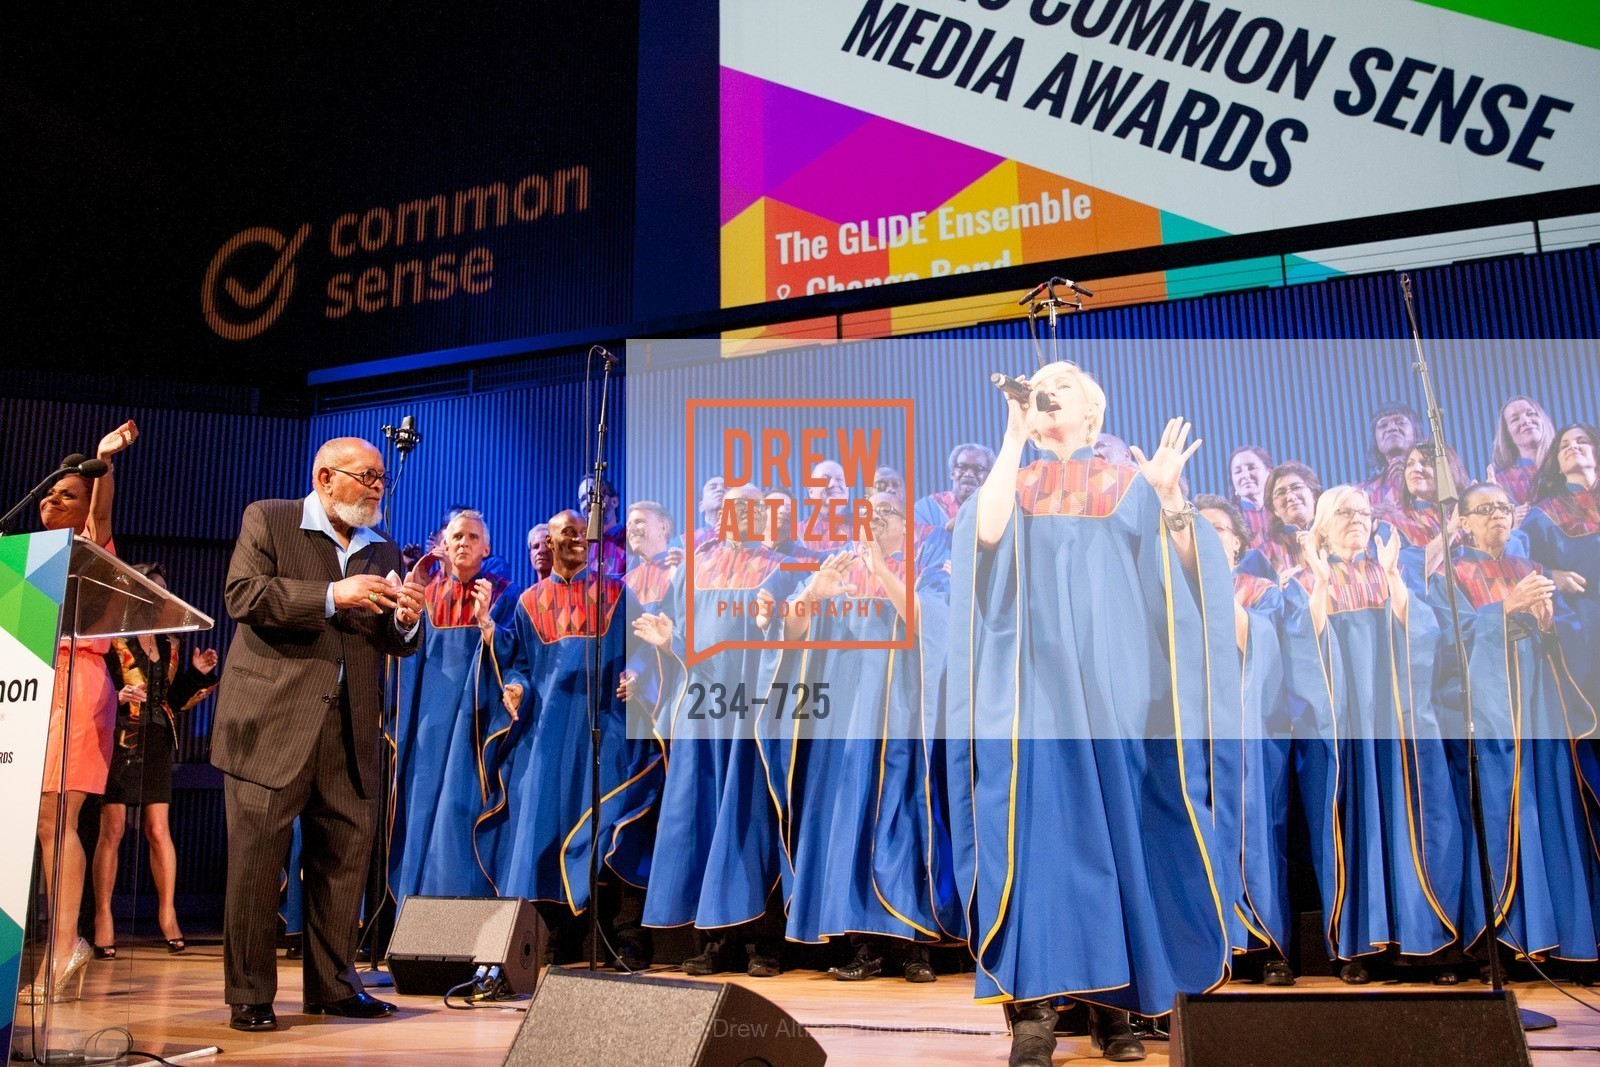 Performance, COMMON SENSE Media Awards 2015, US, May 13th, 2015,Drew Altizer, Drew Altizer Photography, full-service agency, private events, San Francisco photographer, photographer california